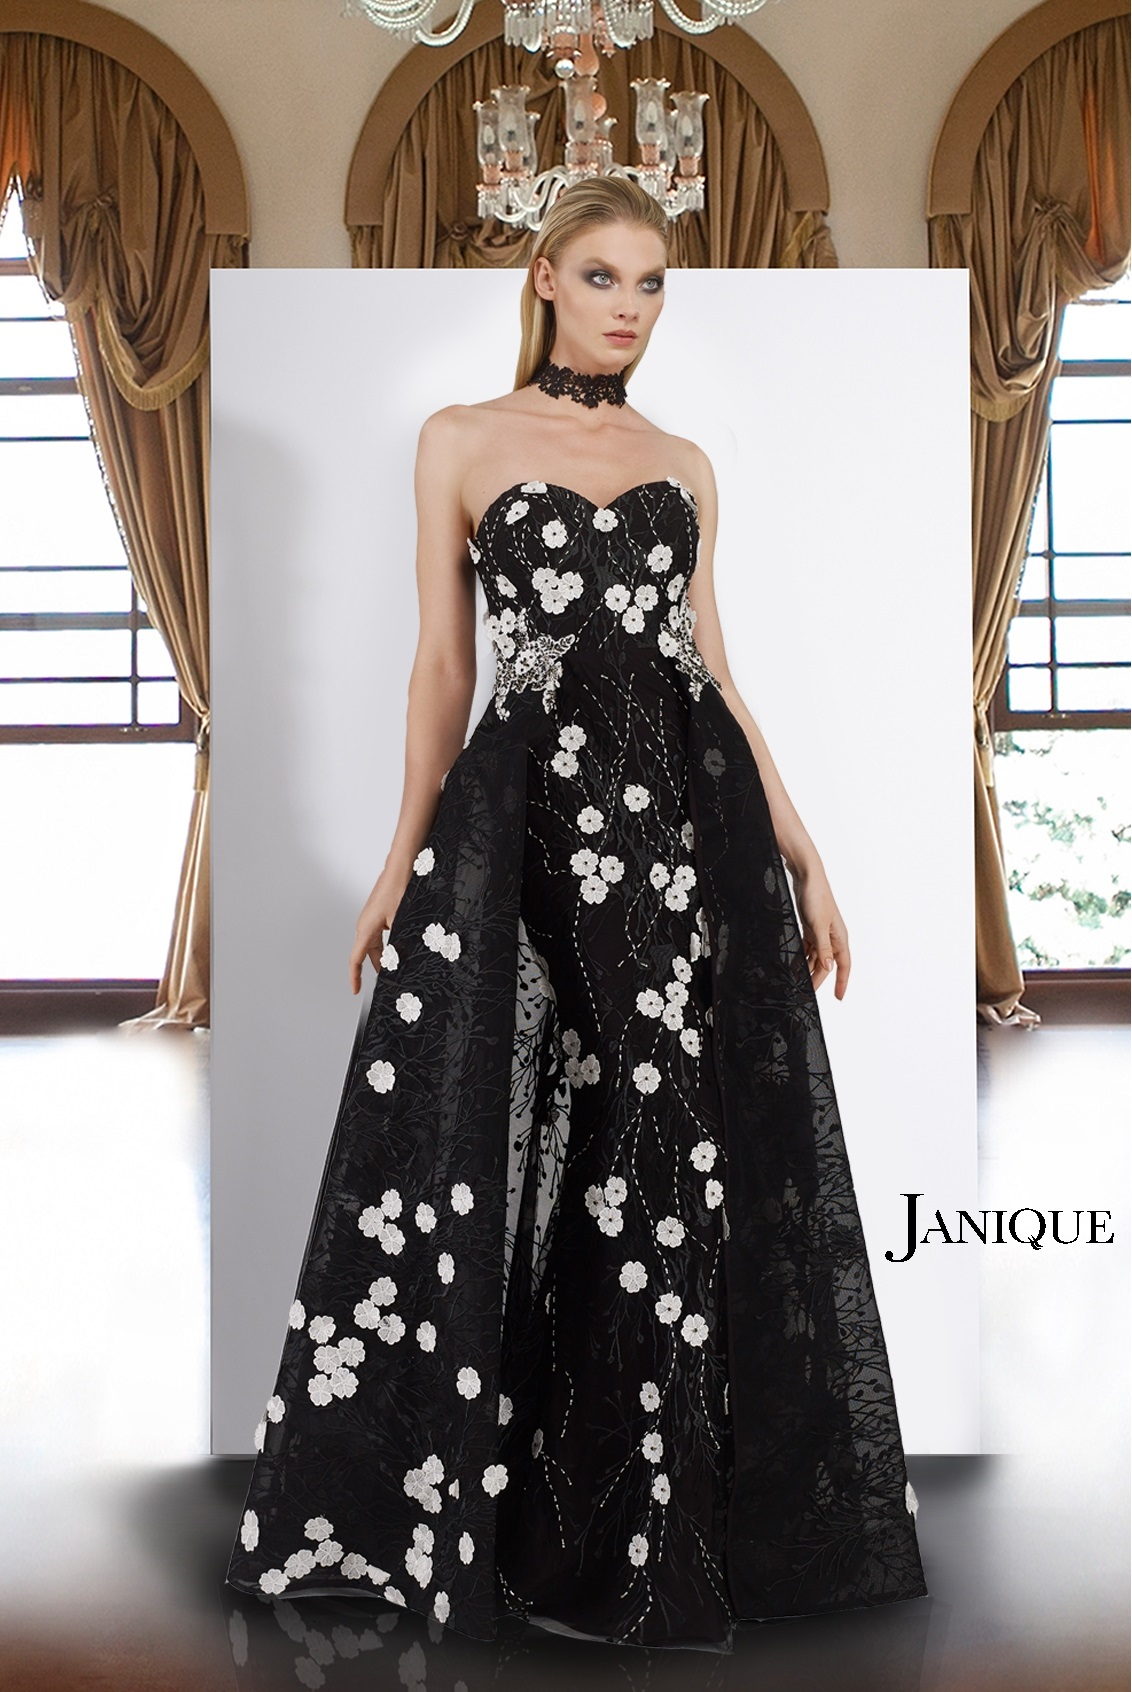 89d2f44ef04 Black and white lace flower applique long gown with overlay skirt.  Strapless white flower applique